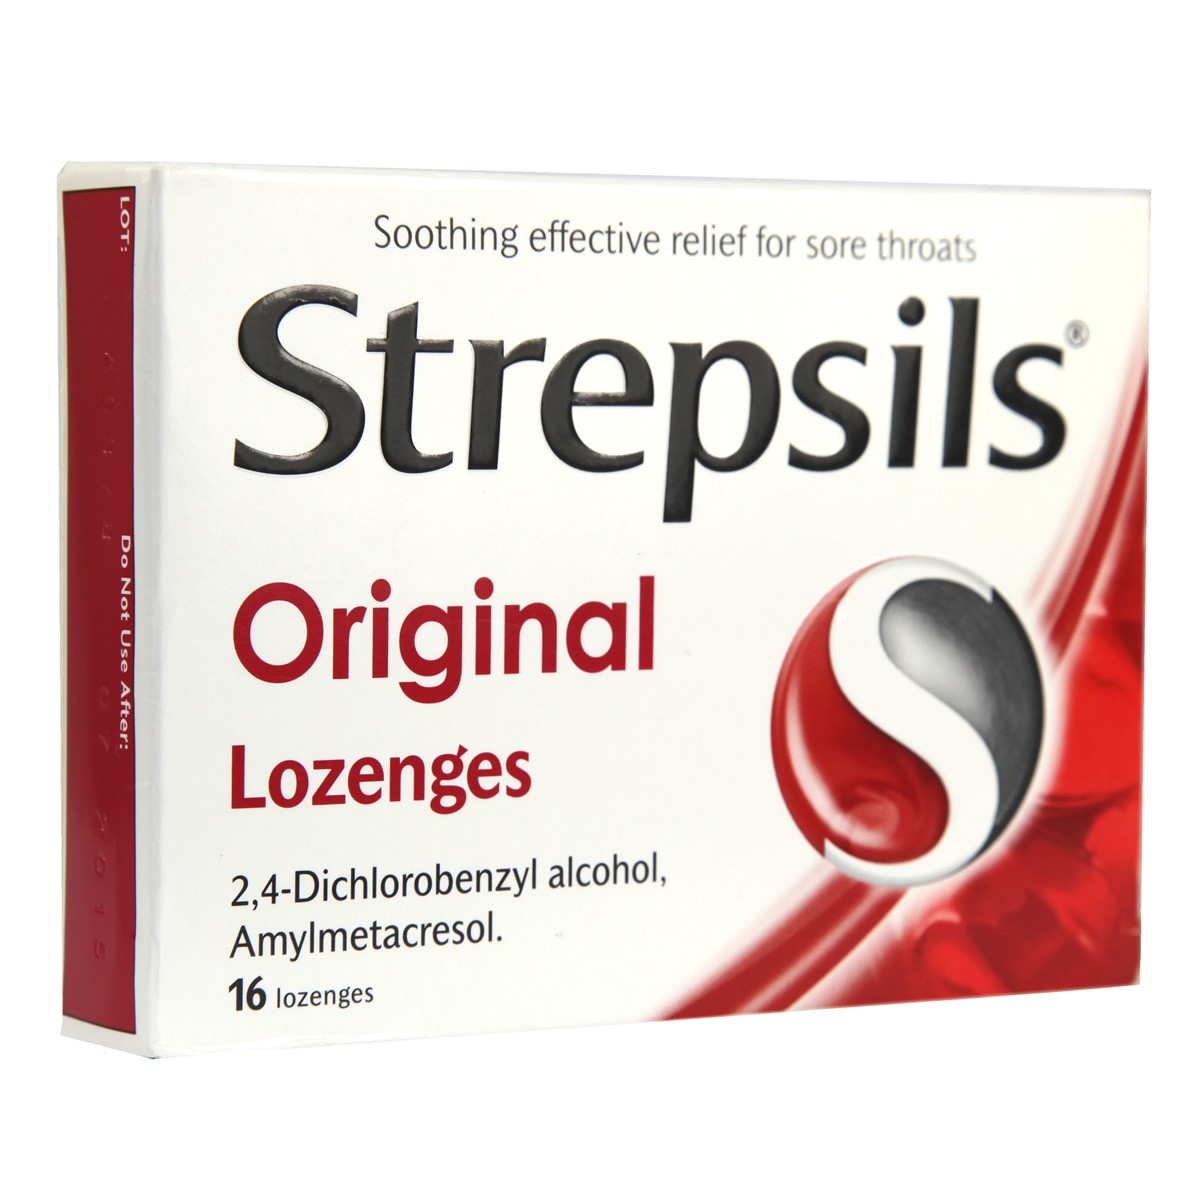 Strepsils Original Lozenges